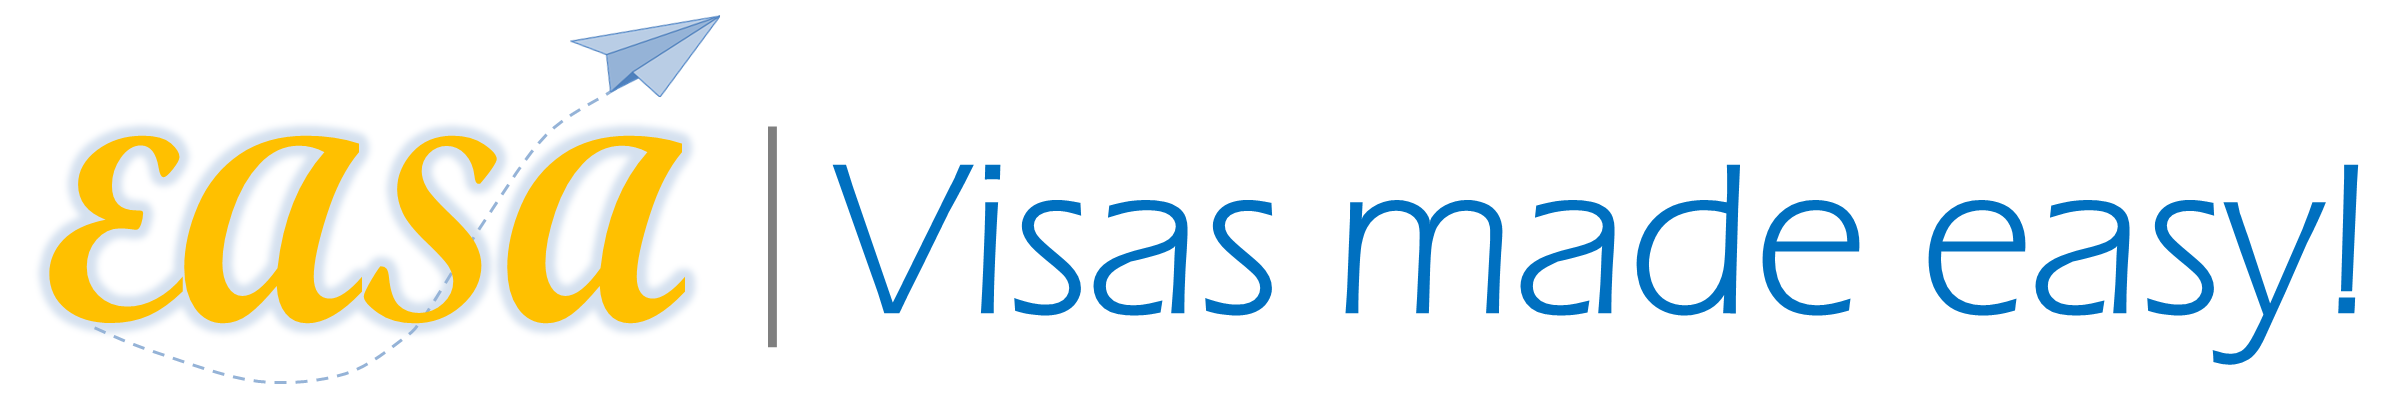 EASA | Visas made easy